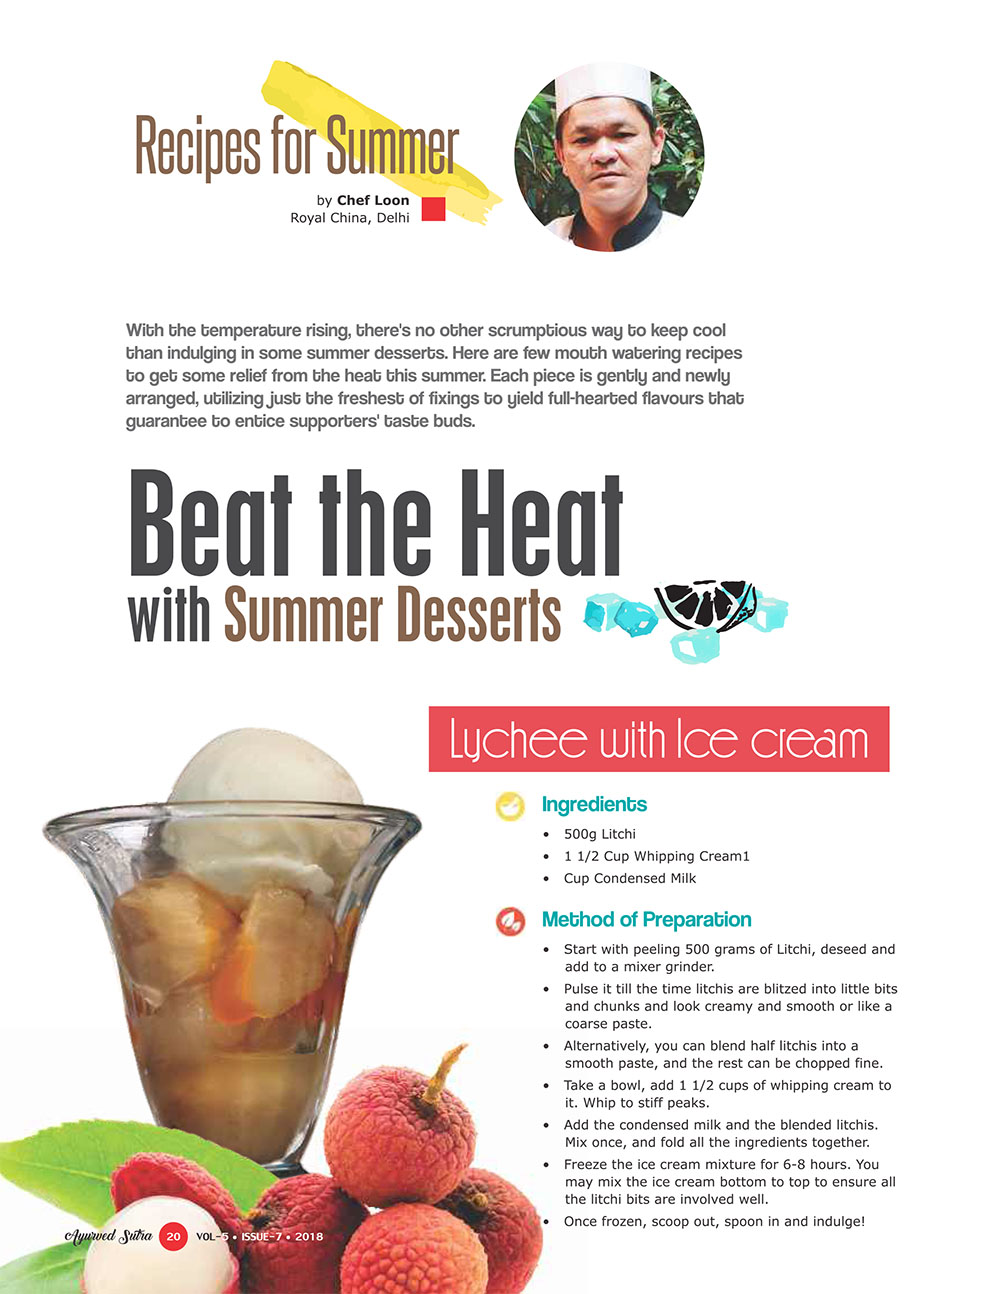 Ayurvedsutra Vol 05 issue 07 22 - Beat the Heat with Summer Desserts